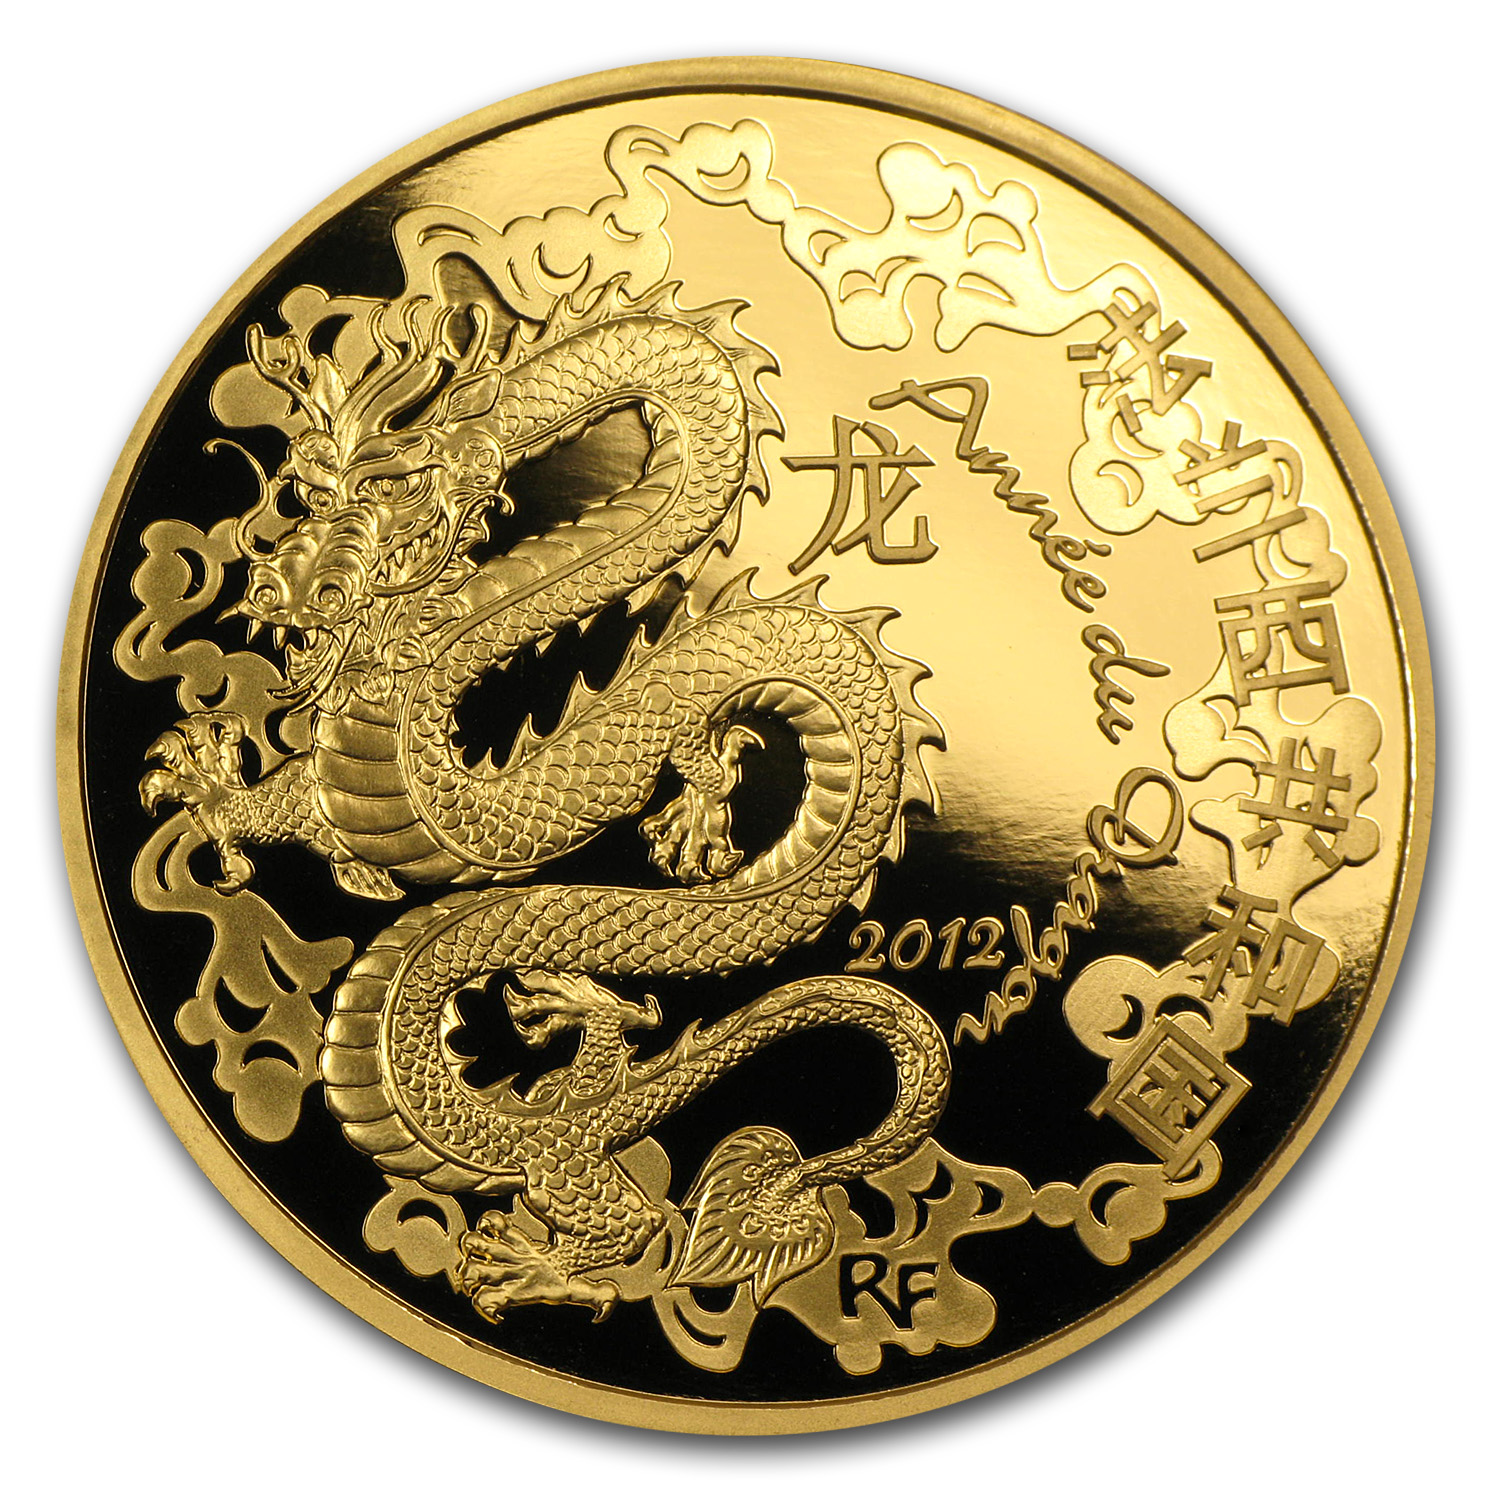 2012 1 oz Proof Gold €200 Year of the Dragon Lunar Series